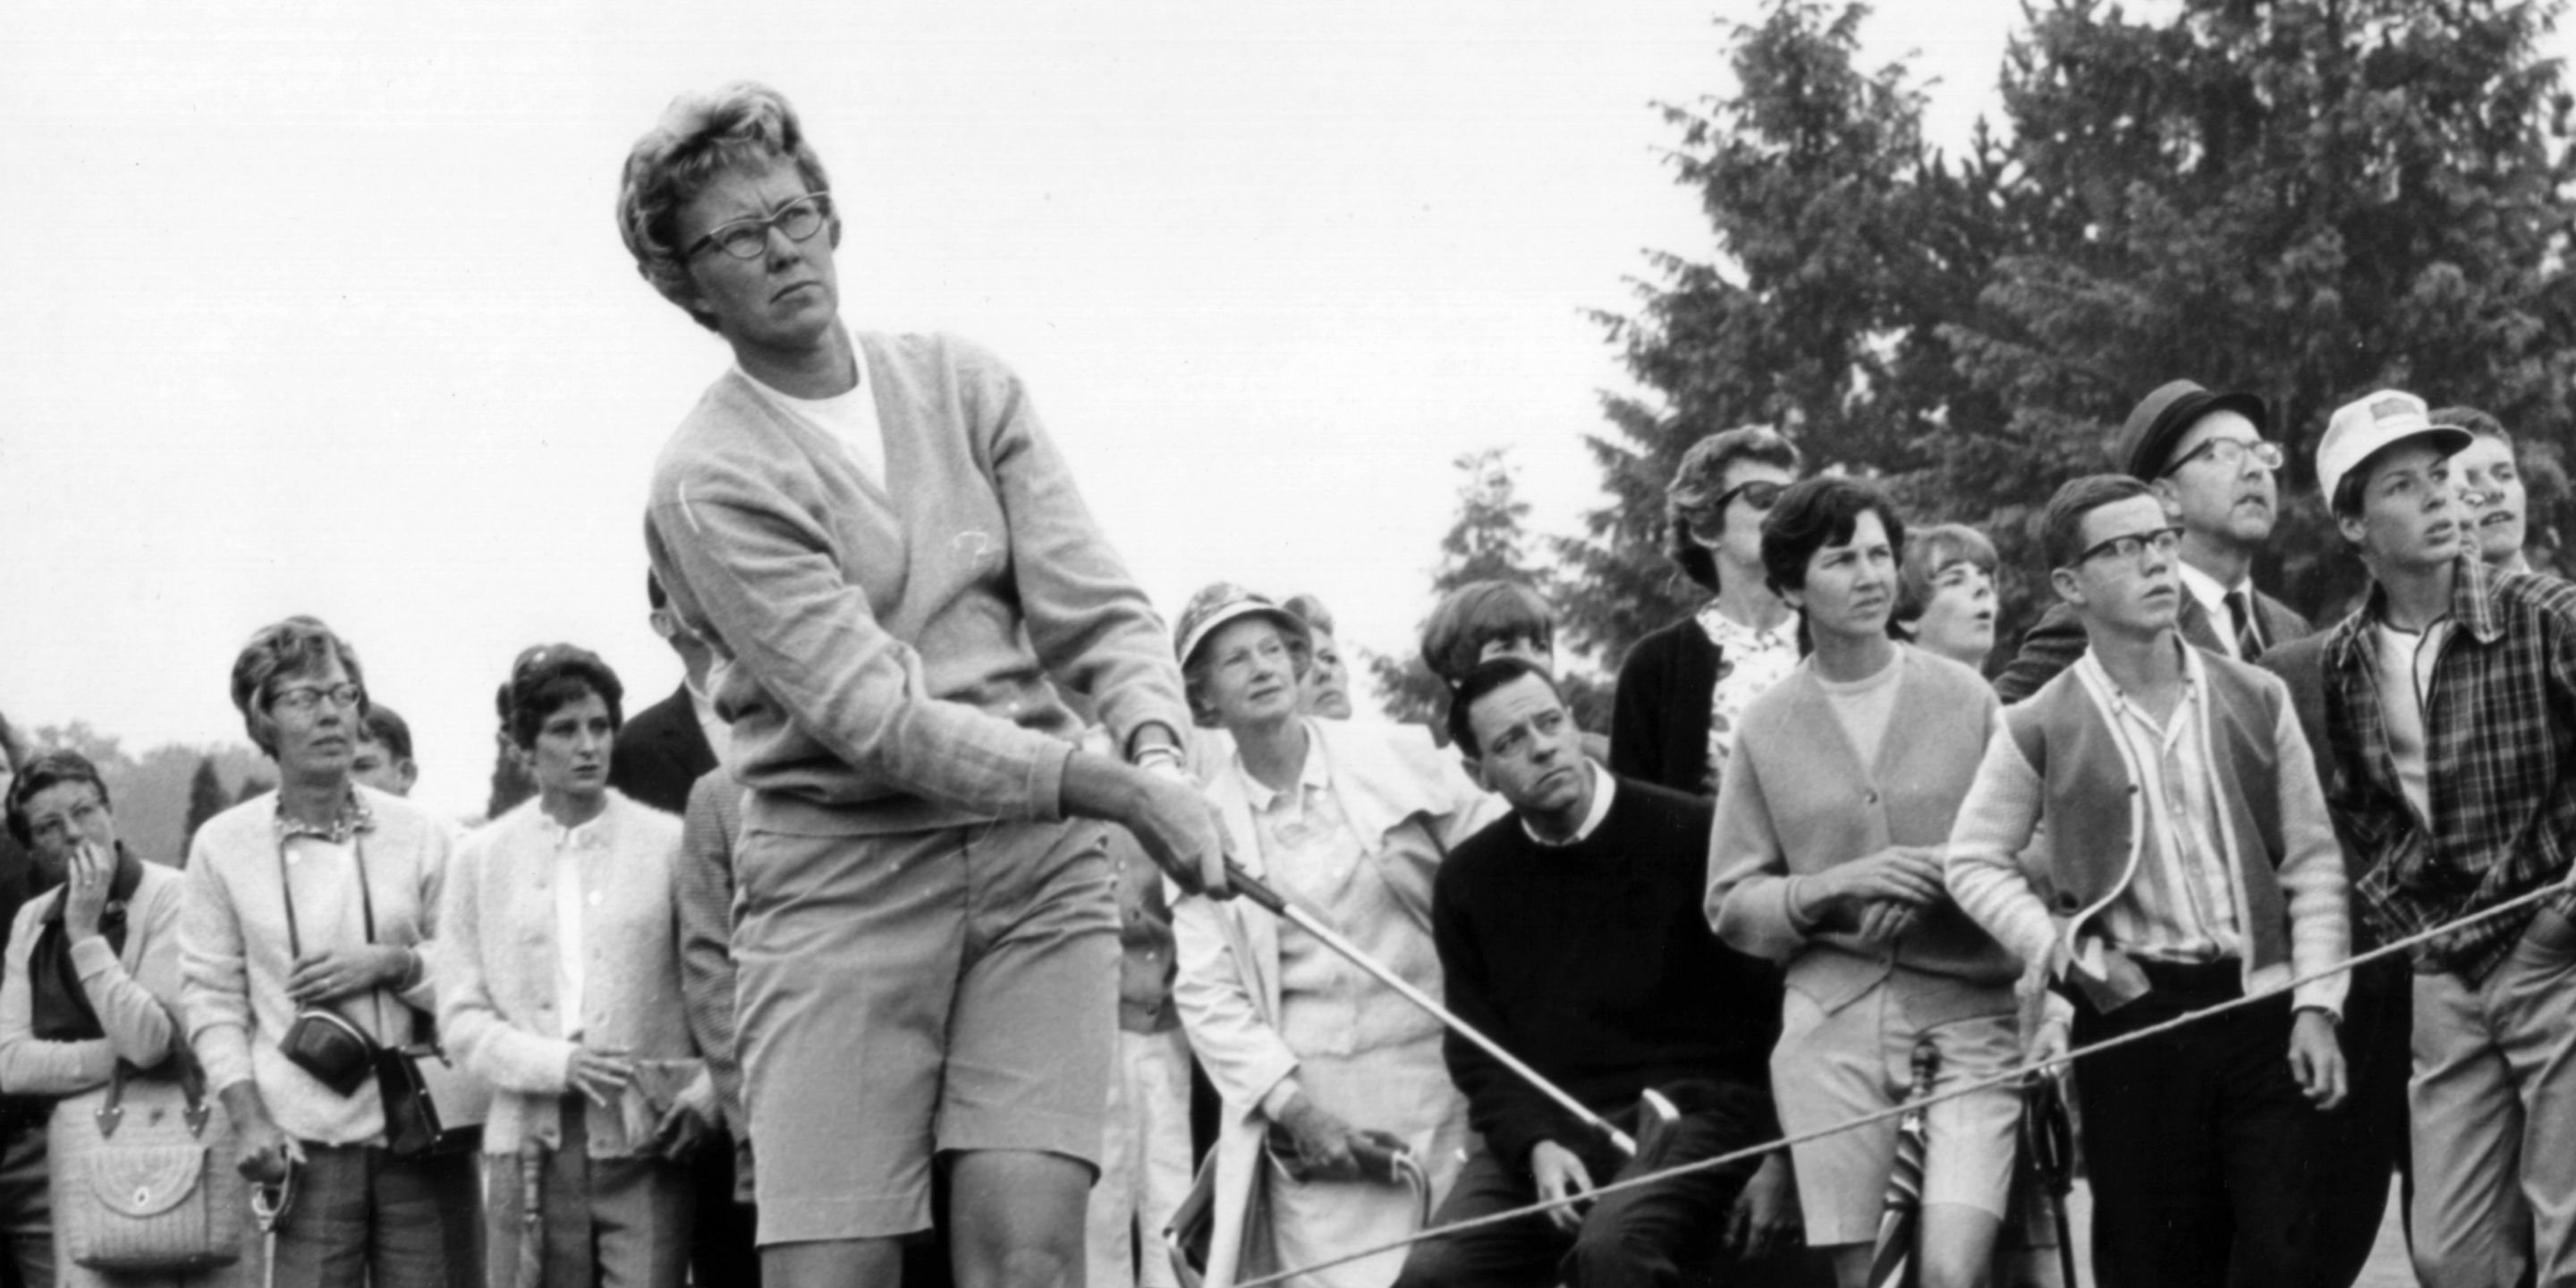 Mickey Wright, golf great and early LPGA force, dies at 85